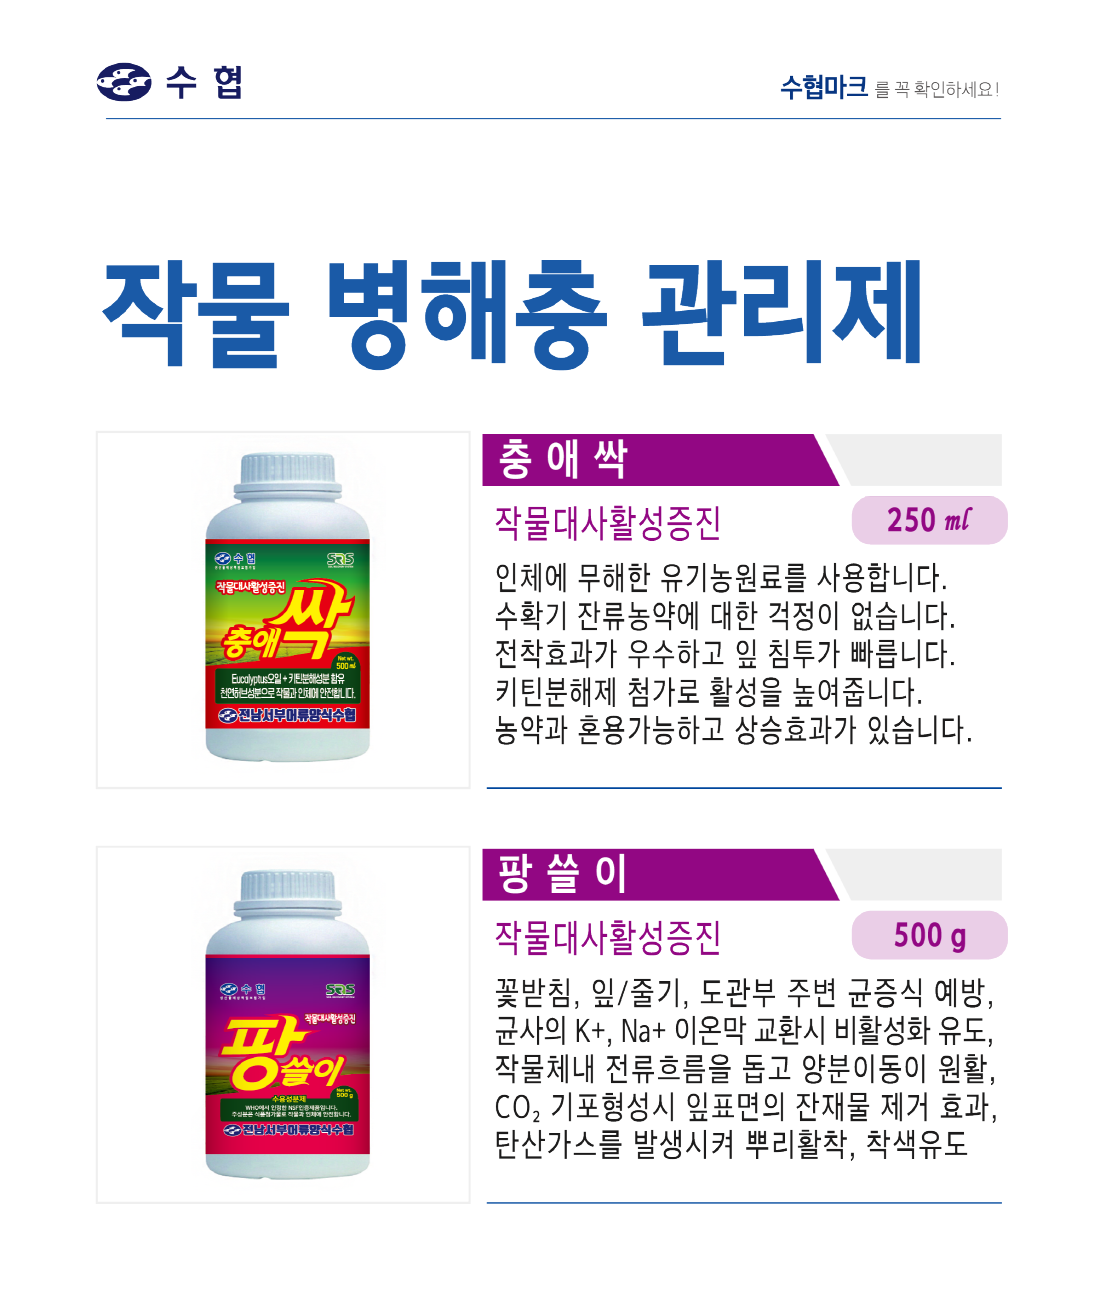 http://suhyup2019.handpr.kr/bs/se2/imgup/1589964642det2_s.png